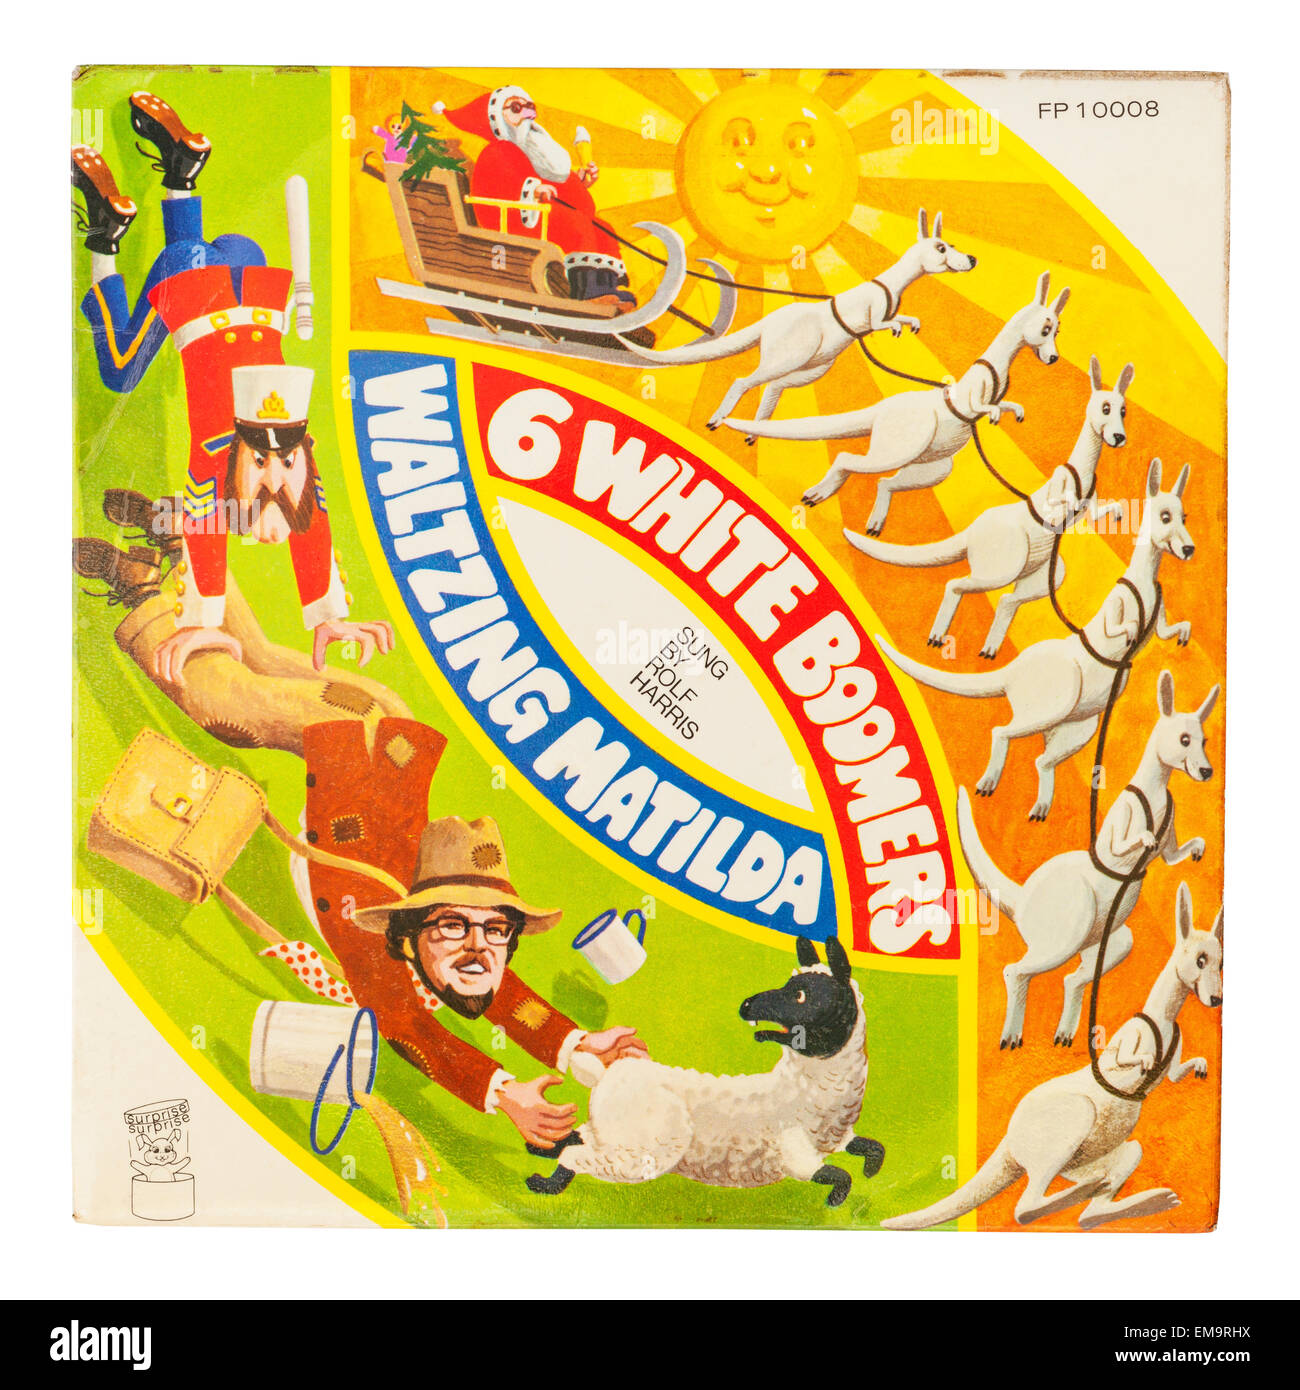 A Childrens Vinyl record called Waltzing Matilda sung by Rolf Harris on a white background - Stock Image